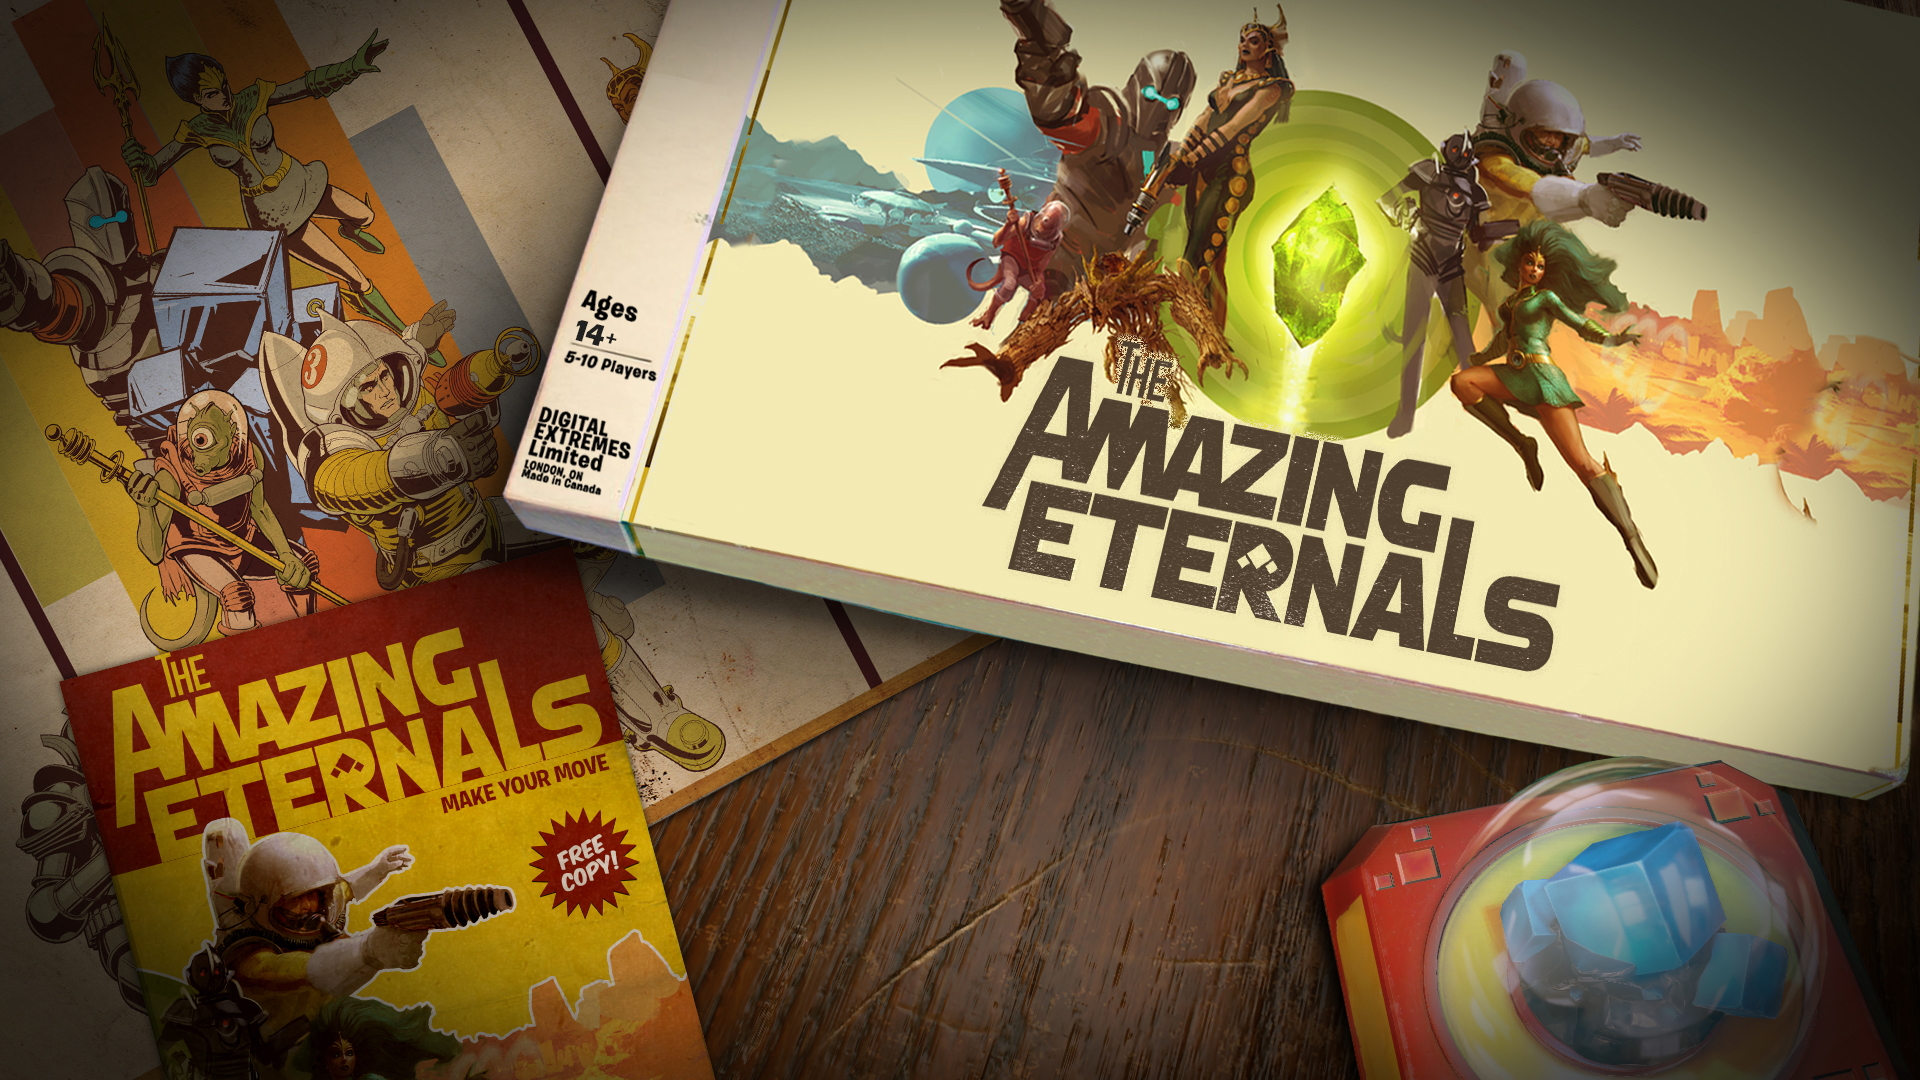 The Amazing Eternals beta key